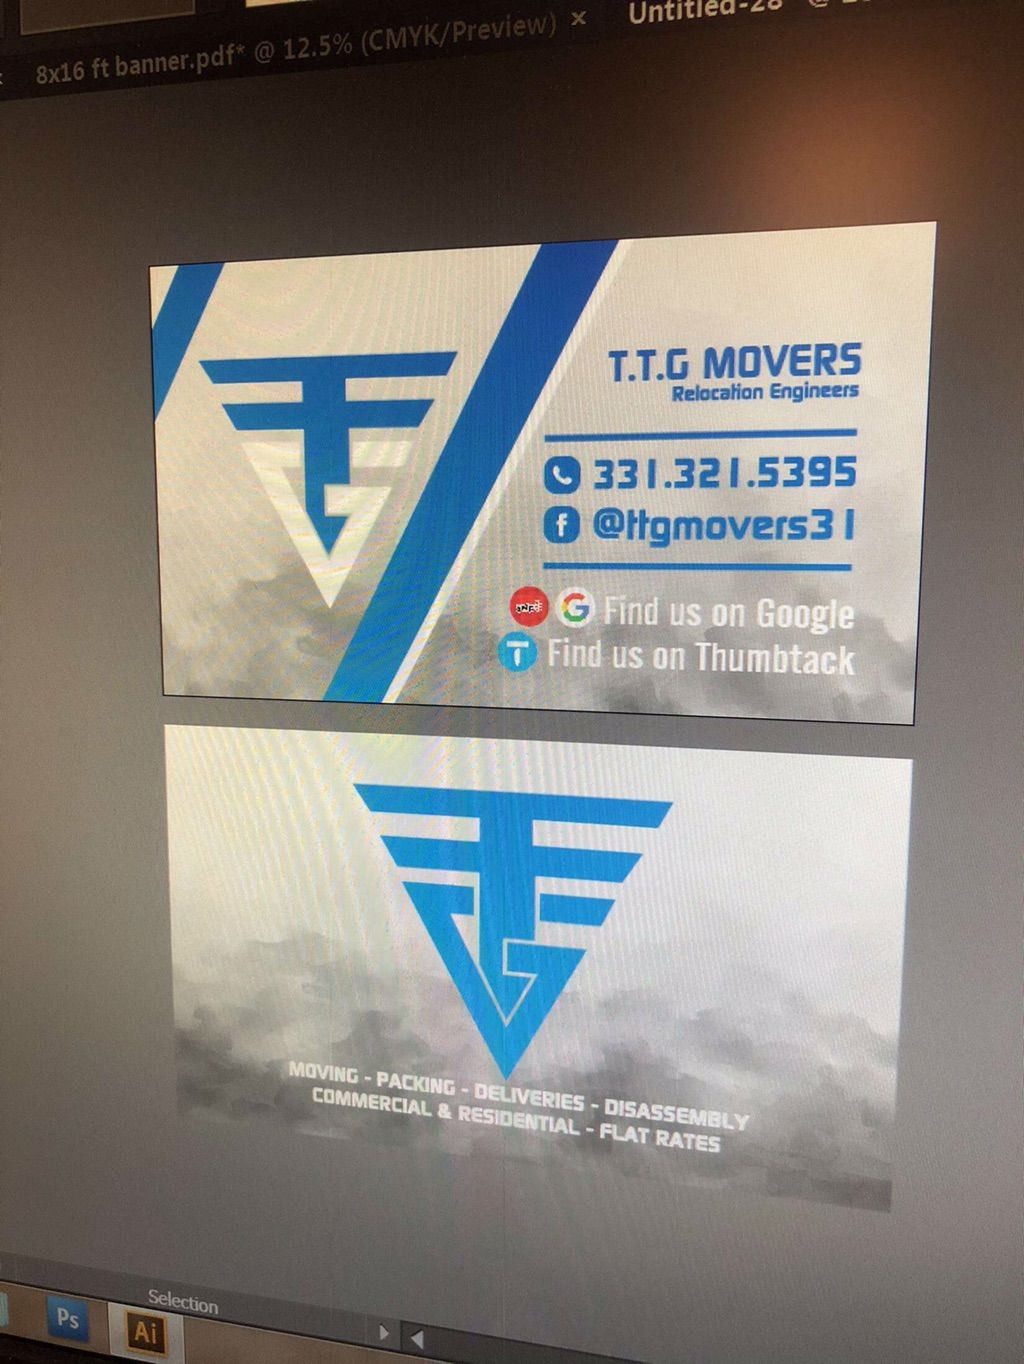 T.T.G Movers